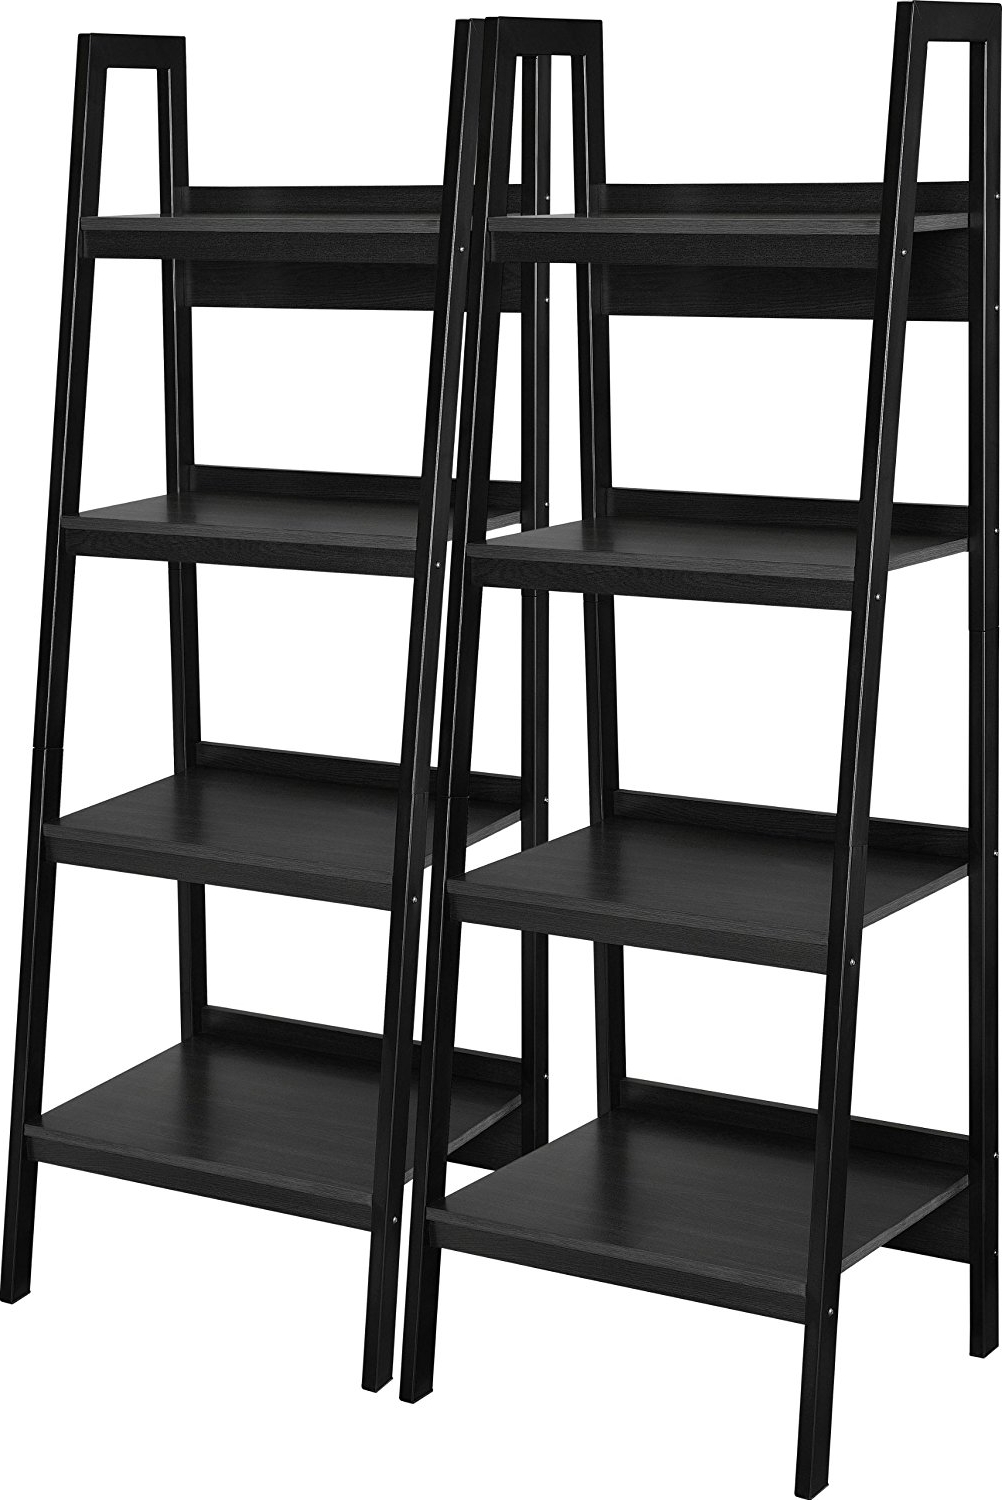 Most Recently Released Amazon: Ameriwood Home Lawrence 4 Shelf Ladder Bookcase Bundle Intended For Black Bookcases (View 8 of 15)